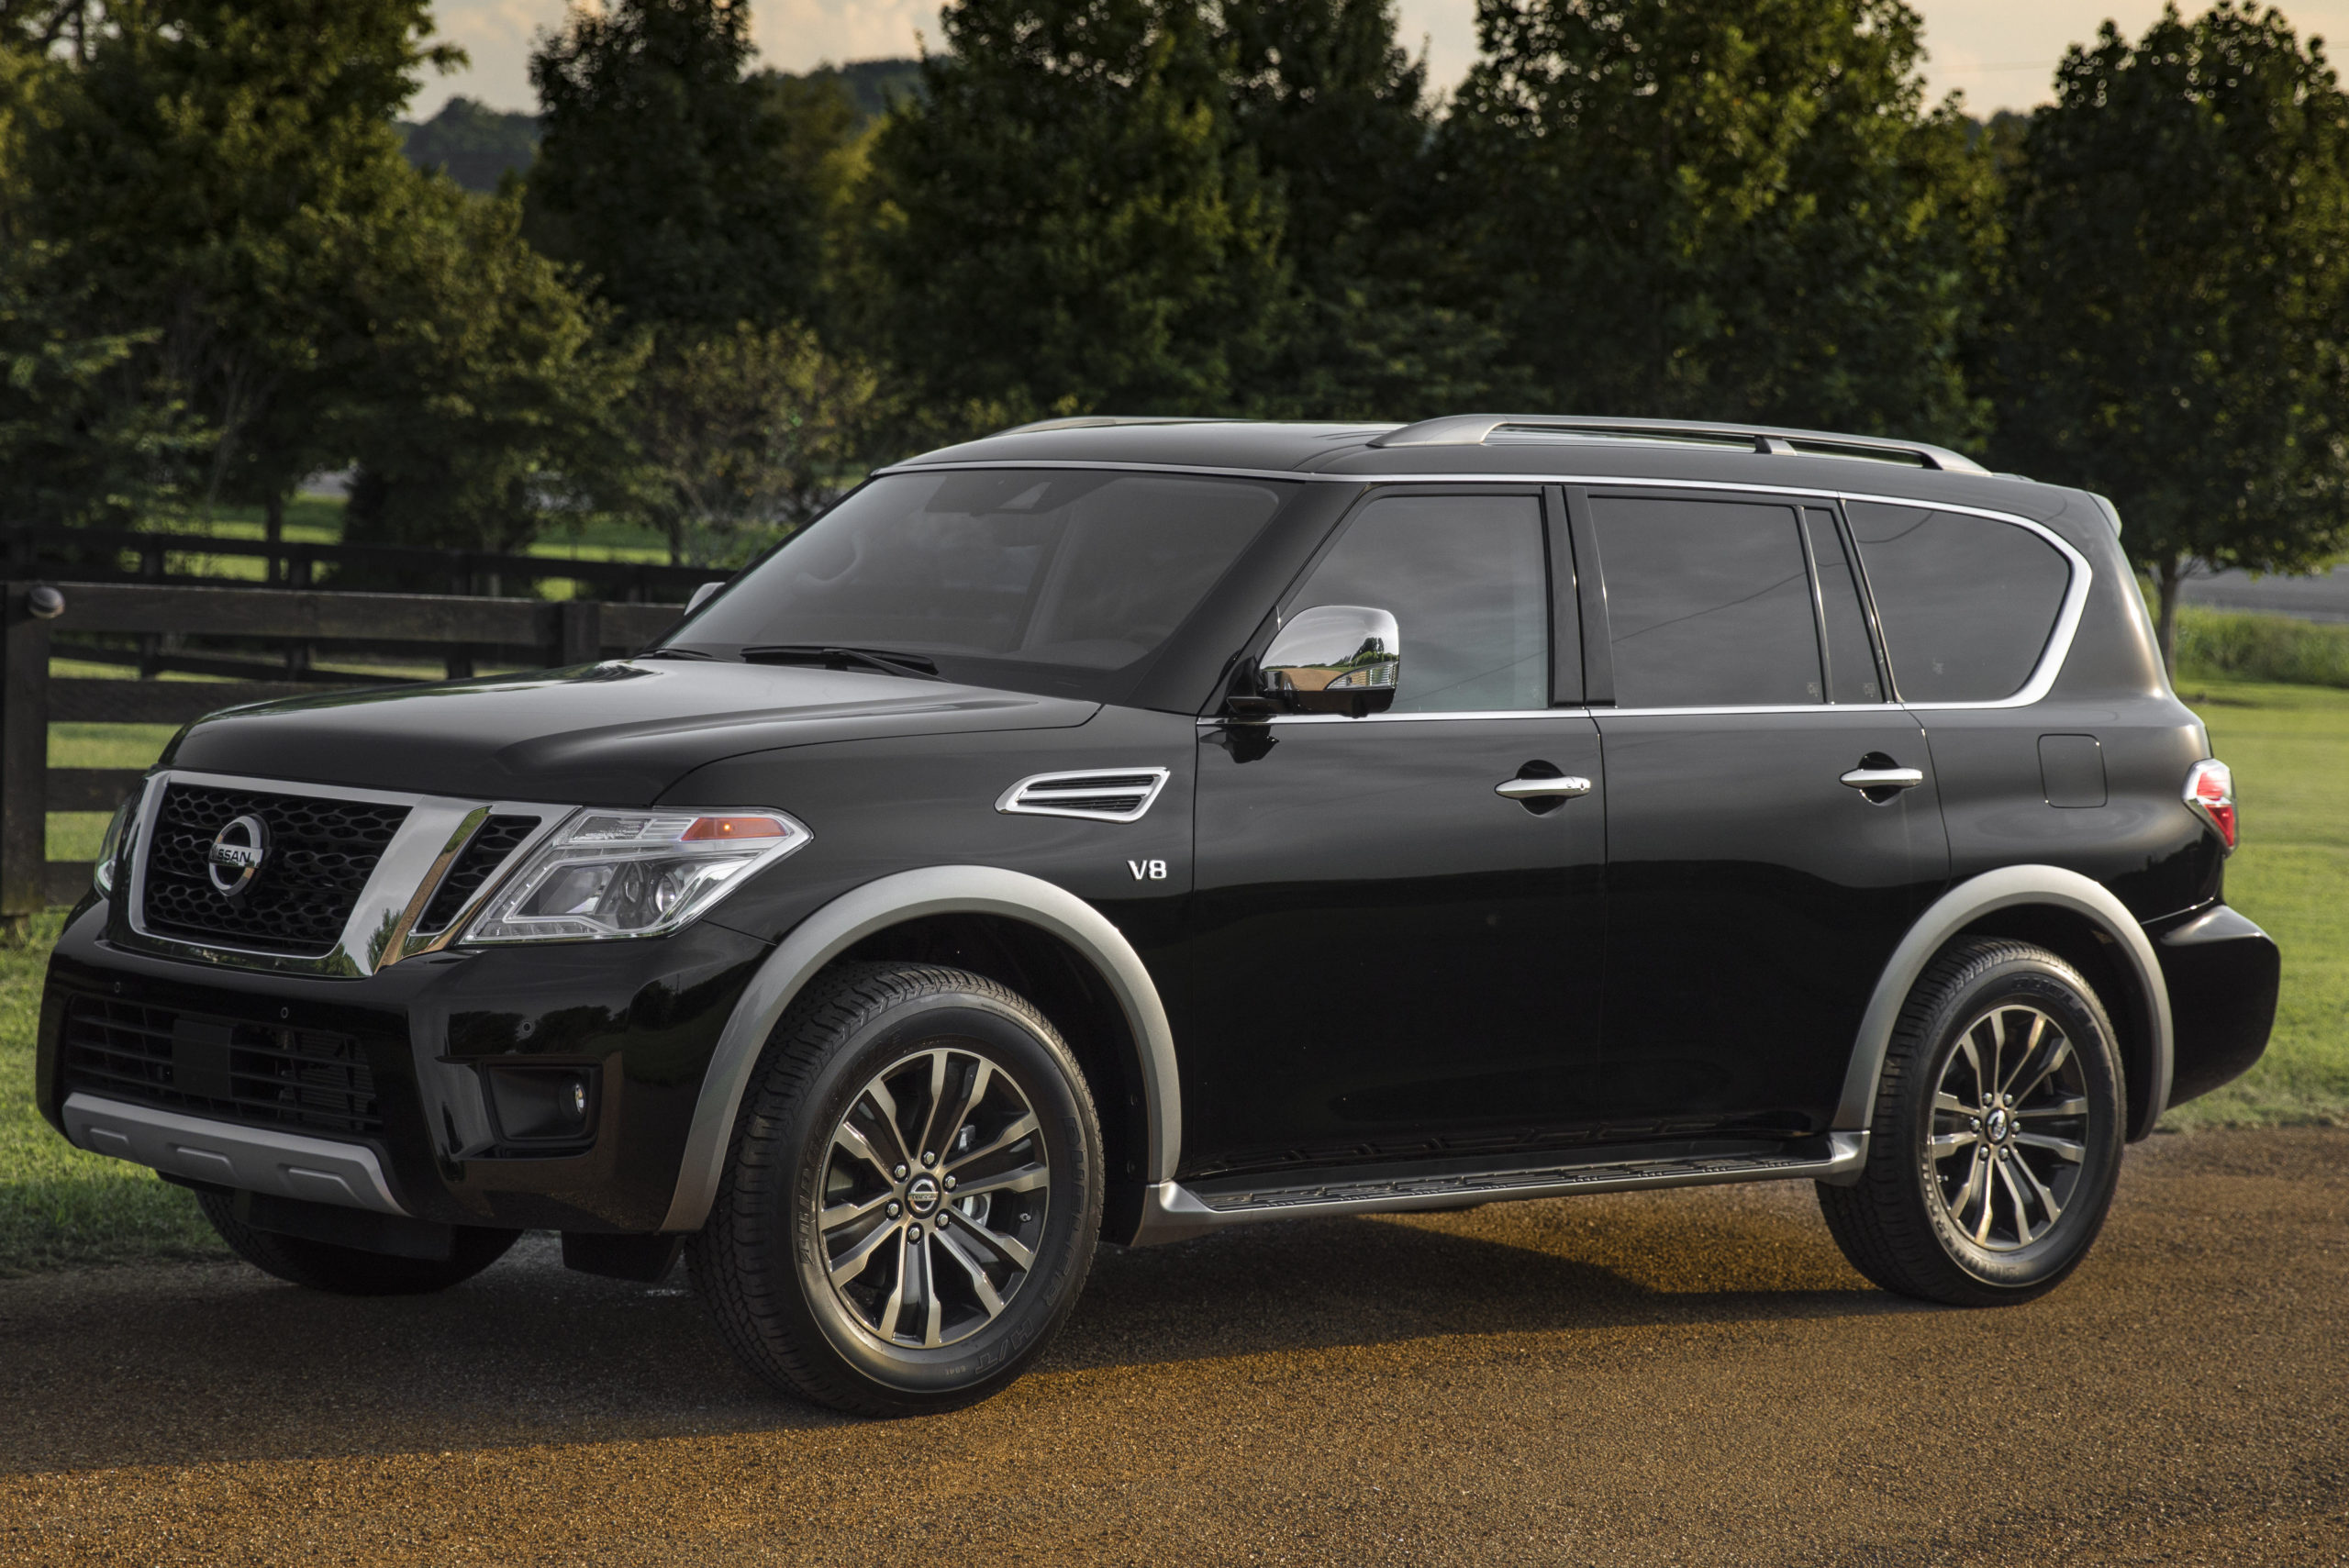 nissan reviews long prevnext of armada term with platinum tent reserve truck report